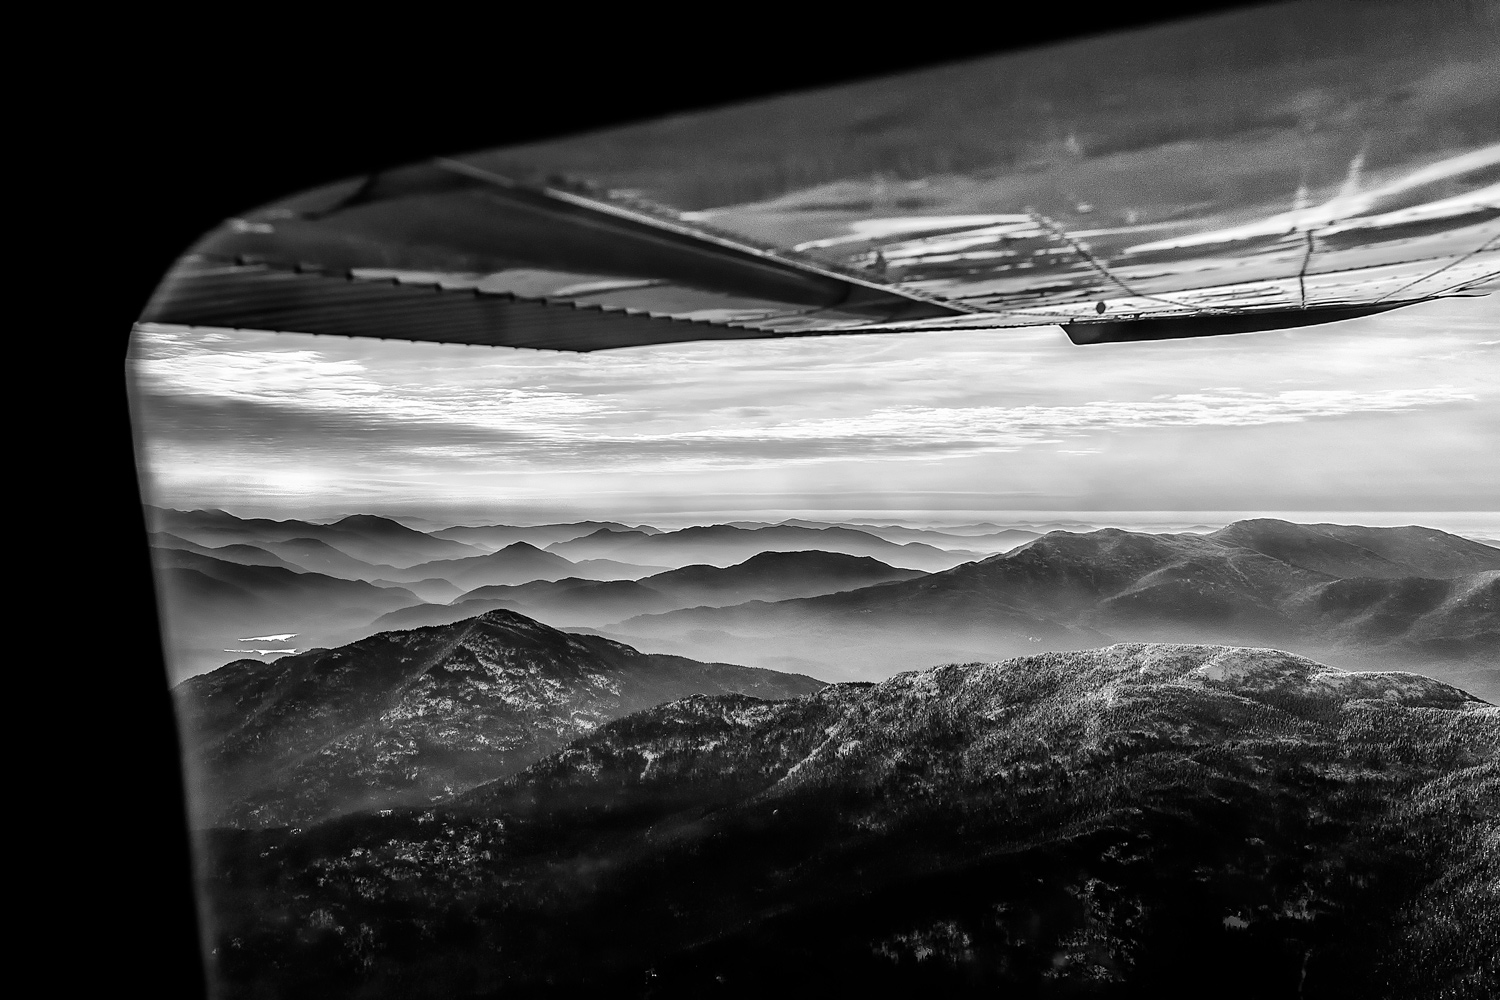 Departing Lake Placid in the early morning, westbound for Cleveland